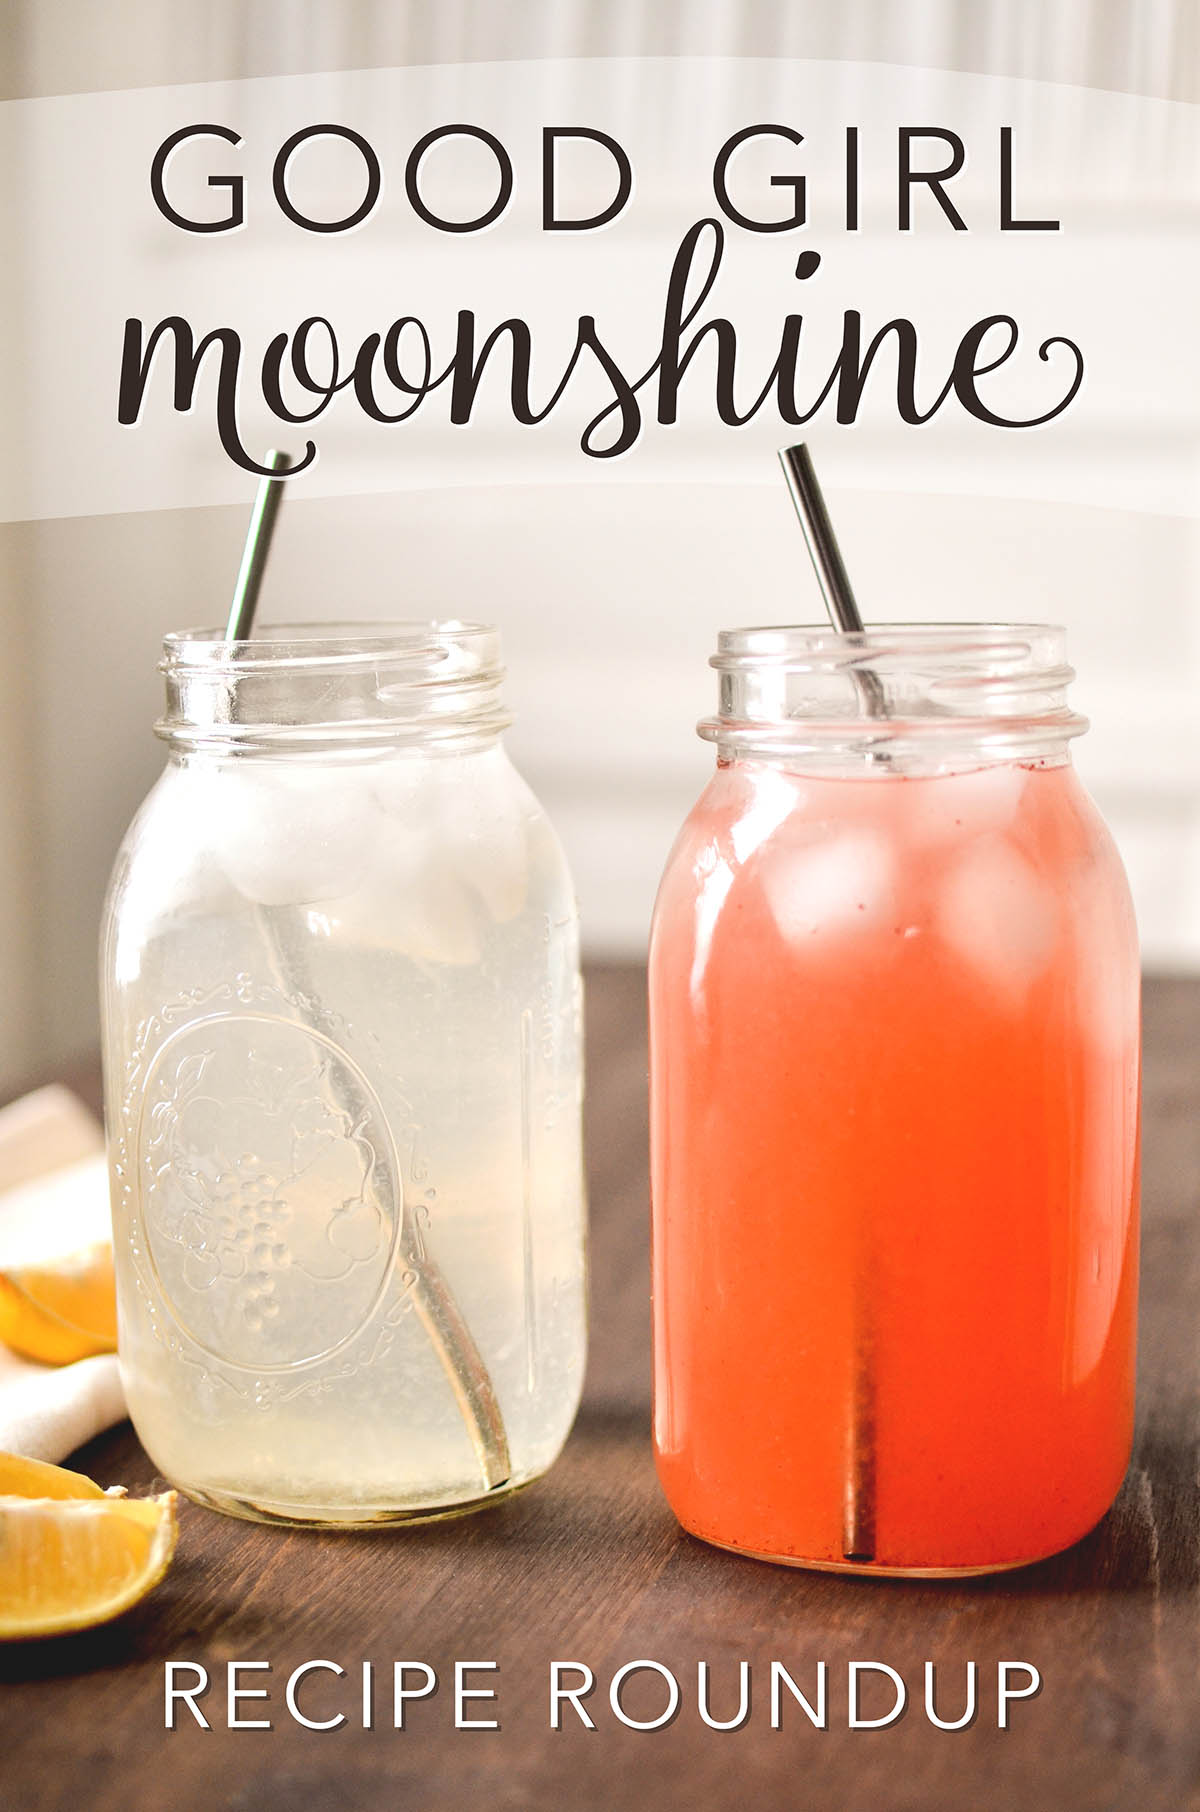 Good Girl Moonshine with two jars one a lemonade and another a strawberry lemonade!